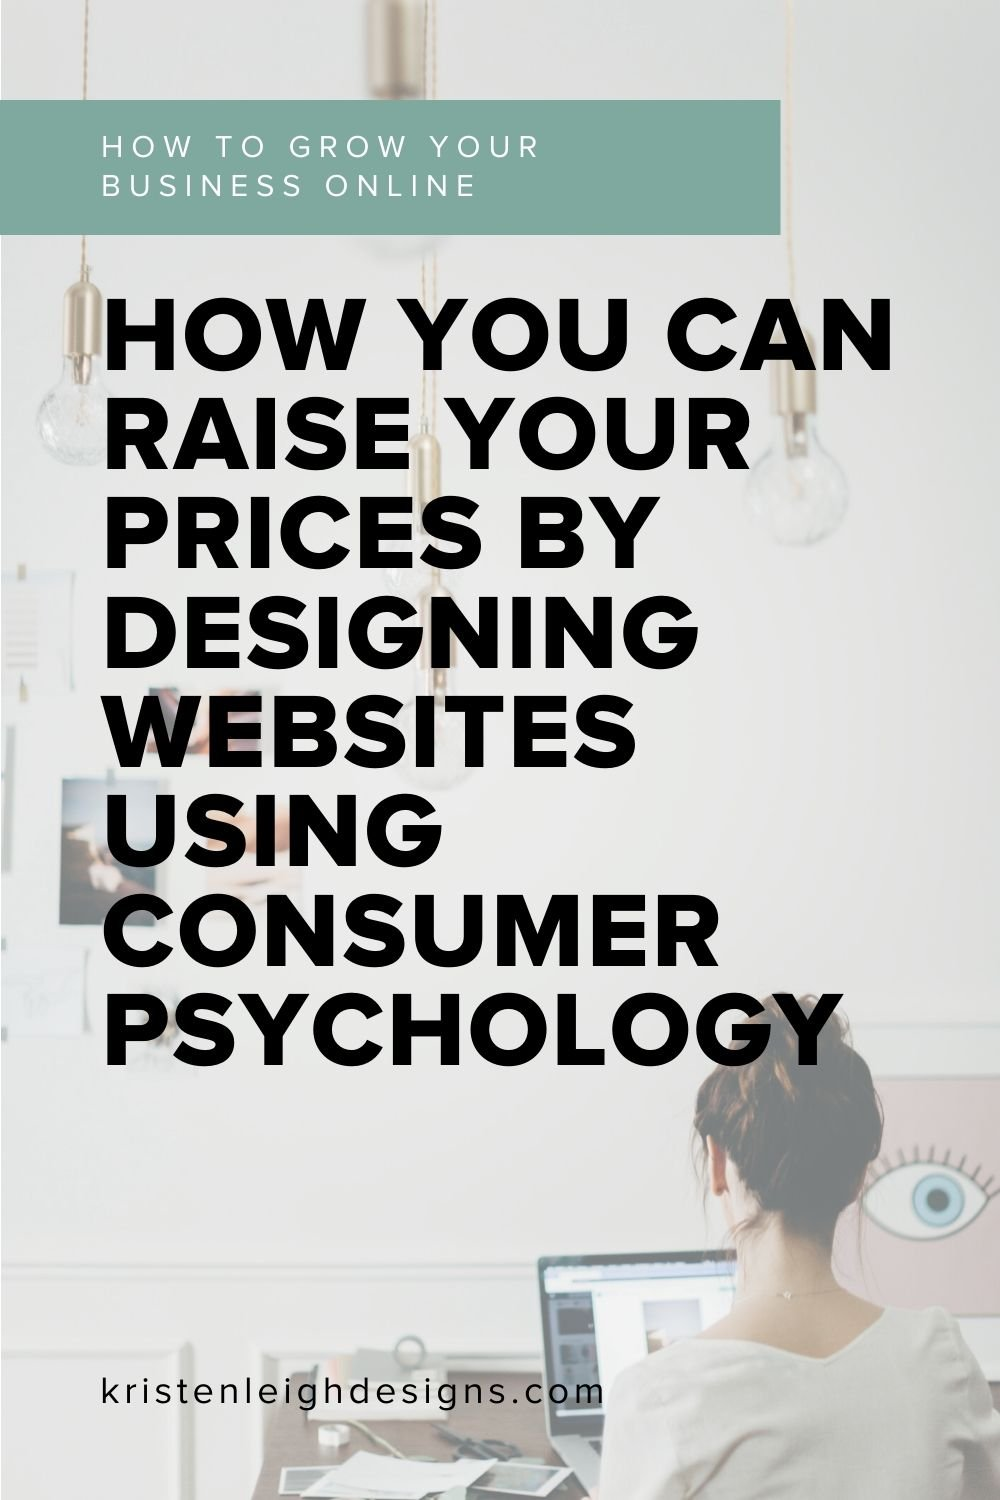 Kristen Leigh   WordPress Web Design Studio   How to Use Consumer Psychology on Your Website to Generate More Sales